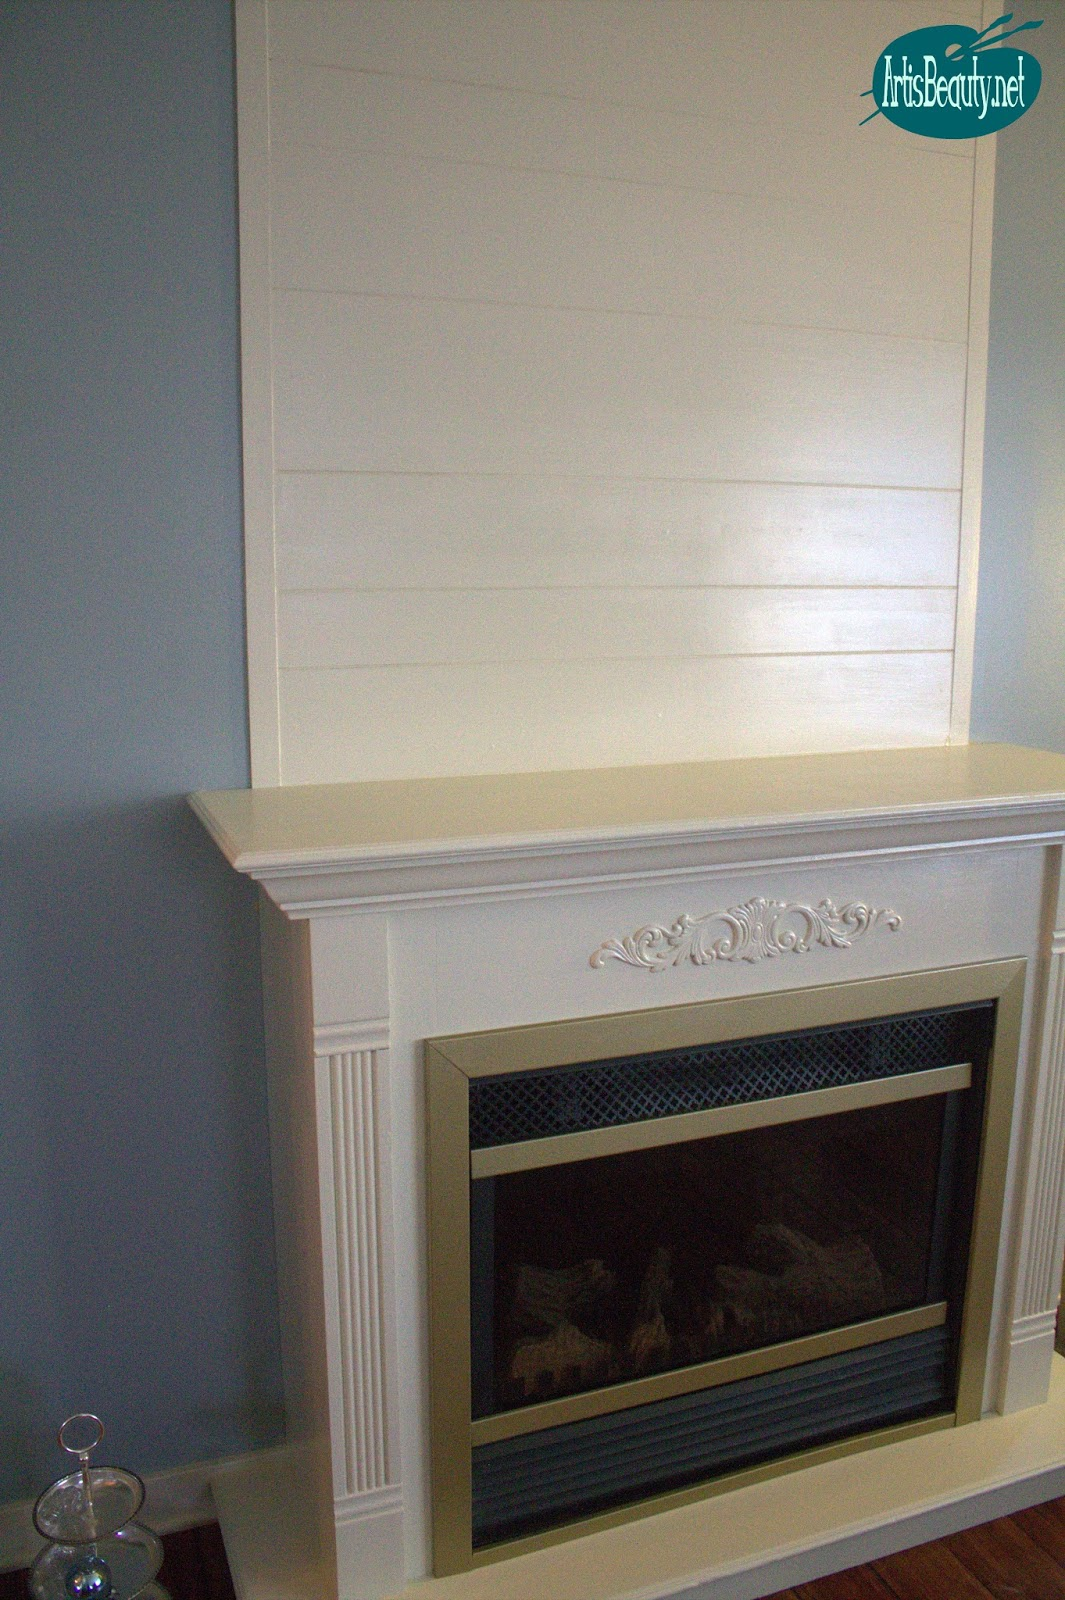 Art is beauty cheap and easy faux shiplap fireplace makeover diy art is beauty cheap and easy faux shiplap fireplace makeover diy for under 30 solutioingenieria Images